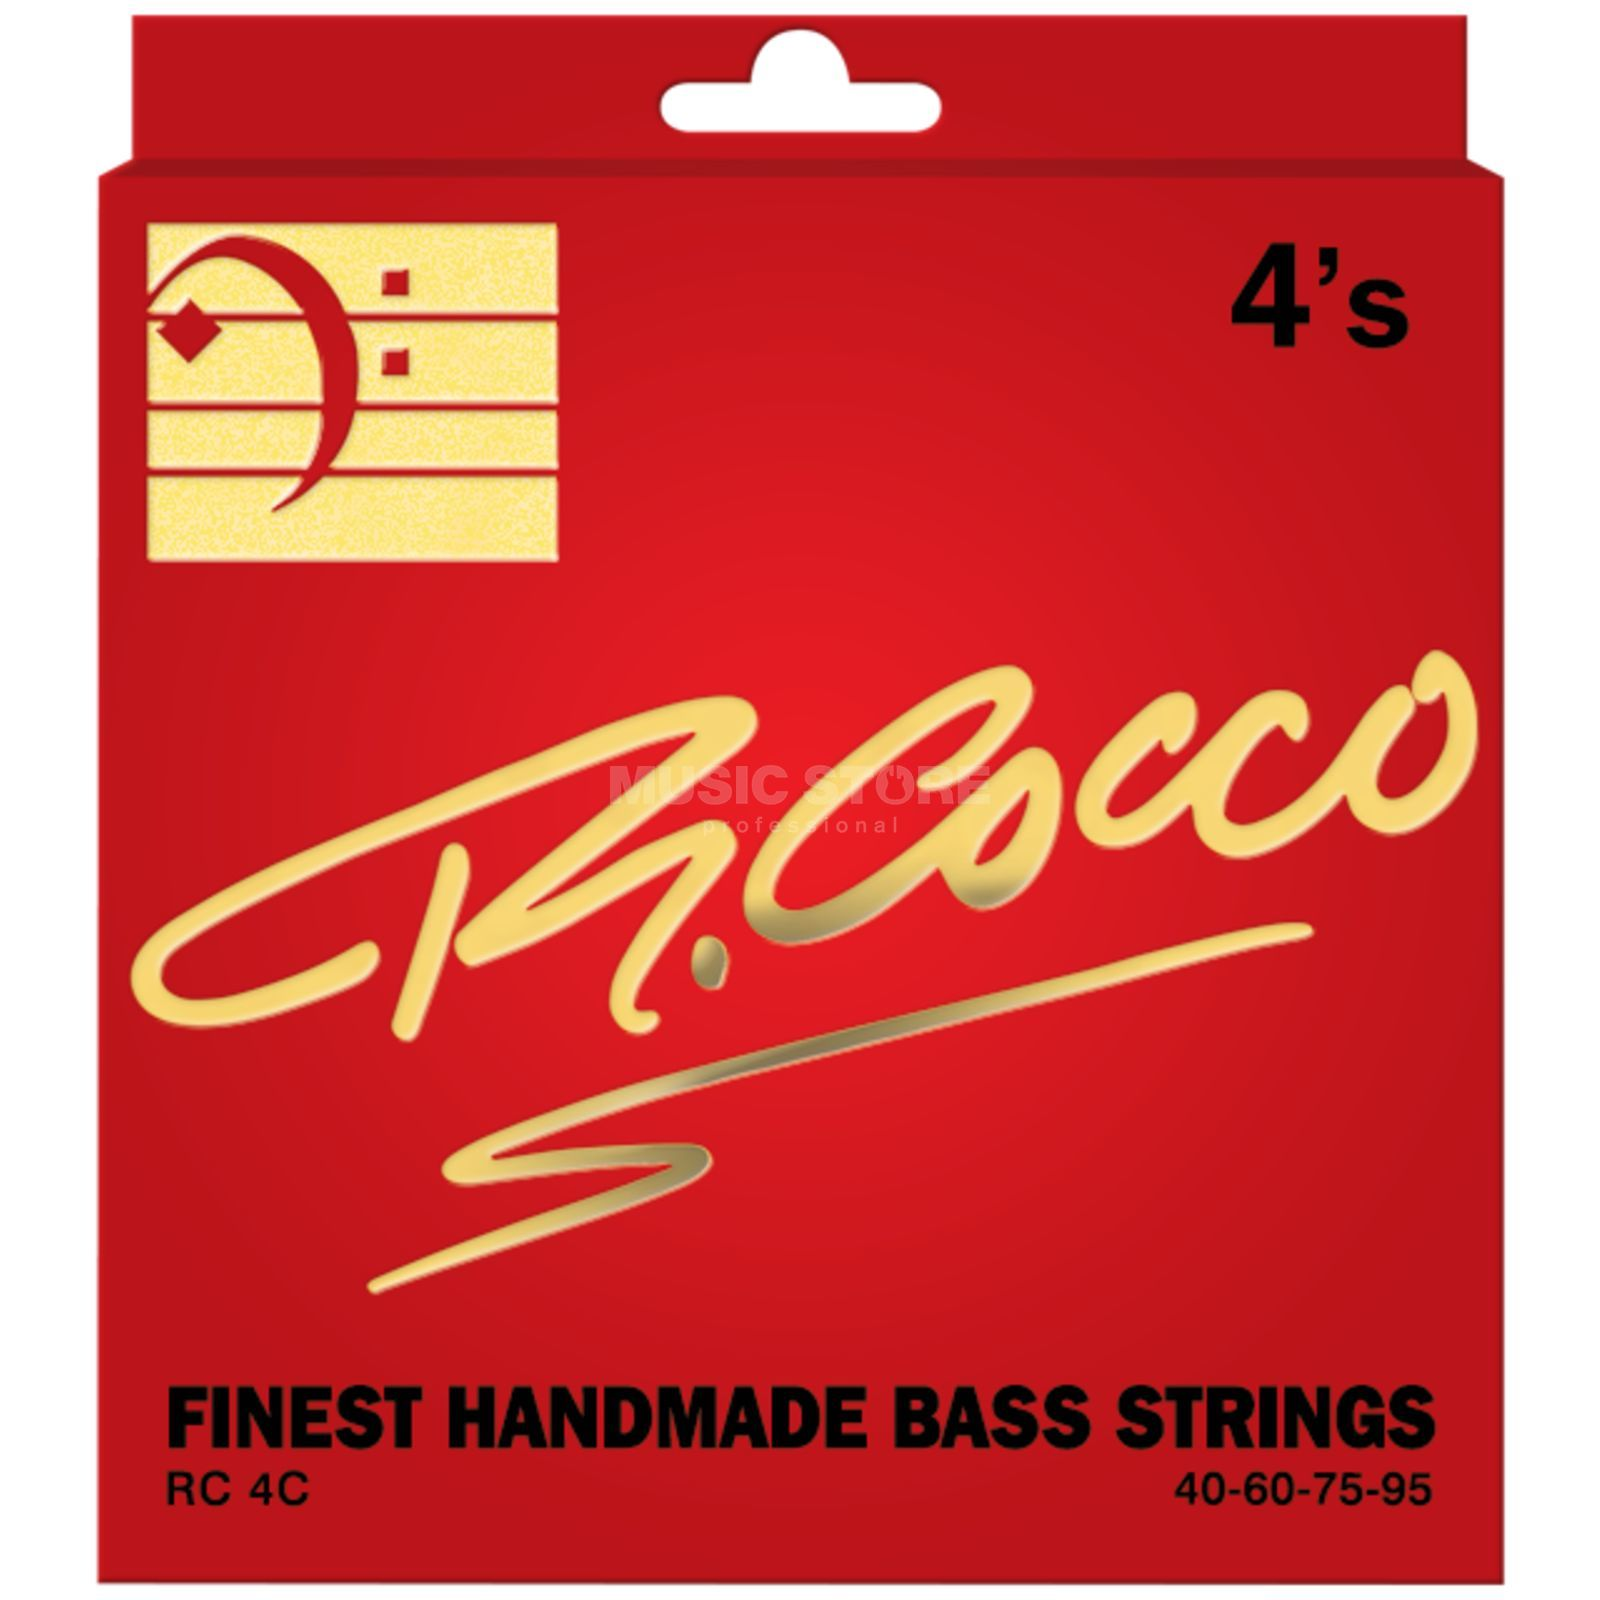 Cocco RC4C Bass Strings 40-95 4 Set, 40-60-75-95  Classic Wound Product Image